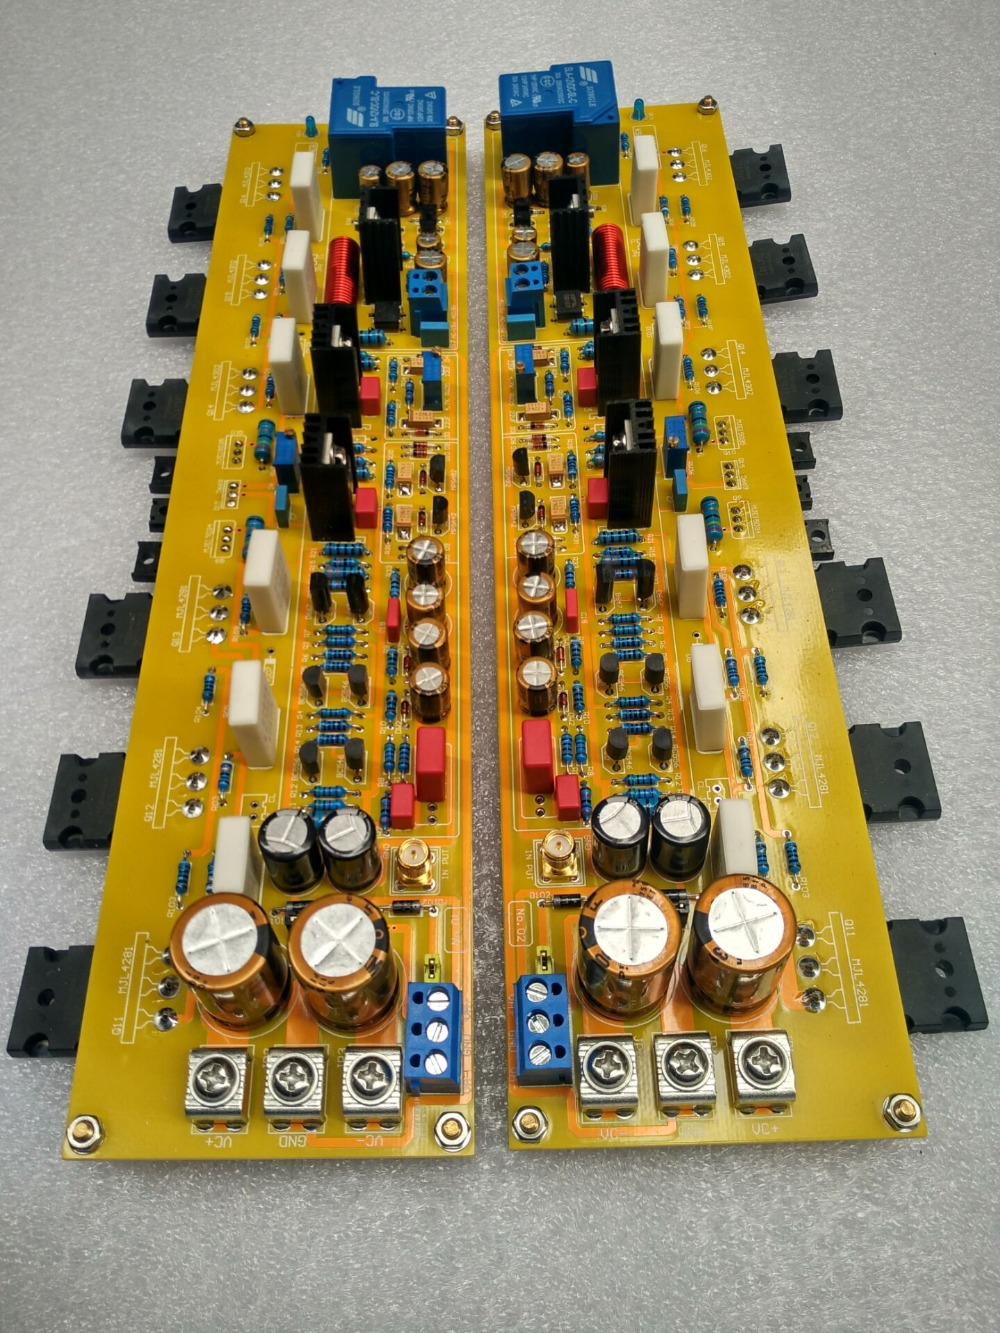 krell ksa50 amplifier circuit 50w 2sc5200 2sa1943 2sc2073 2sa940 2sc5171 2sa1930 tube class a pure after class amplifier board in amplifier from consumer  [ 1000 x 1333 Pixel ]